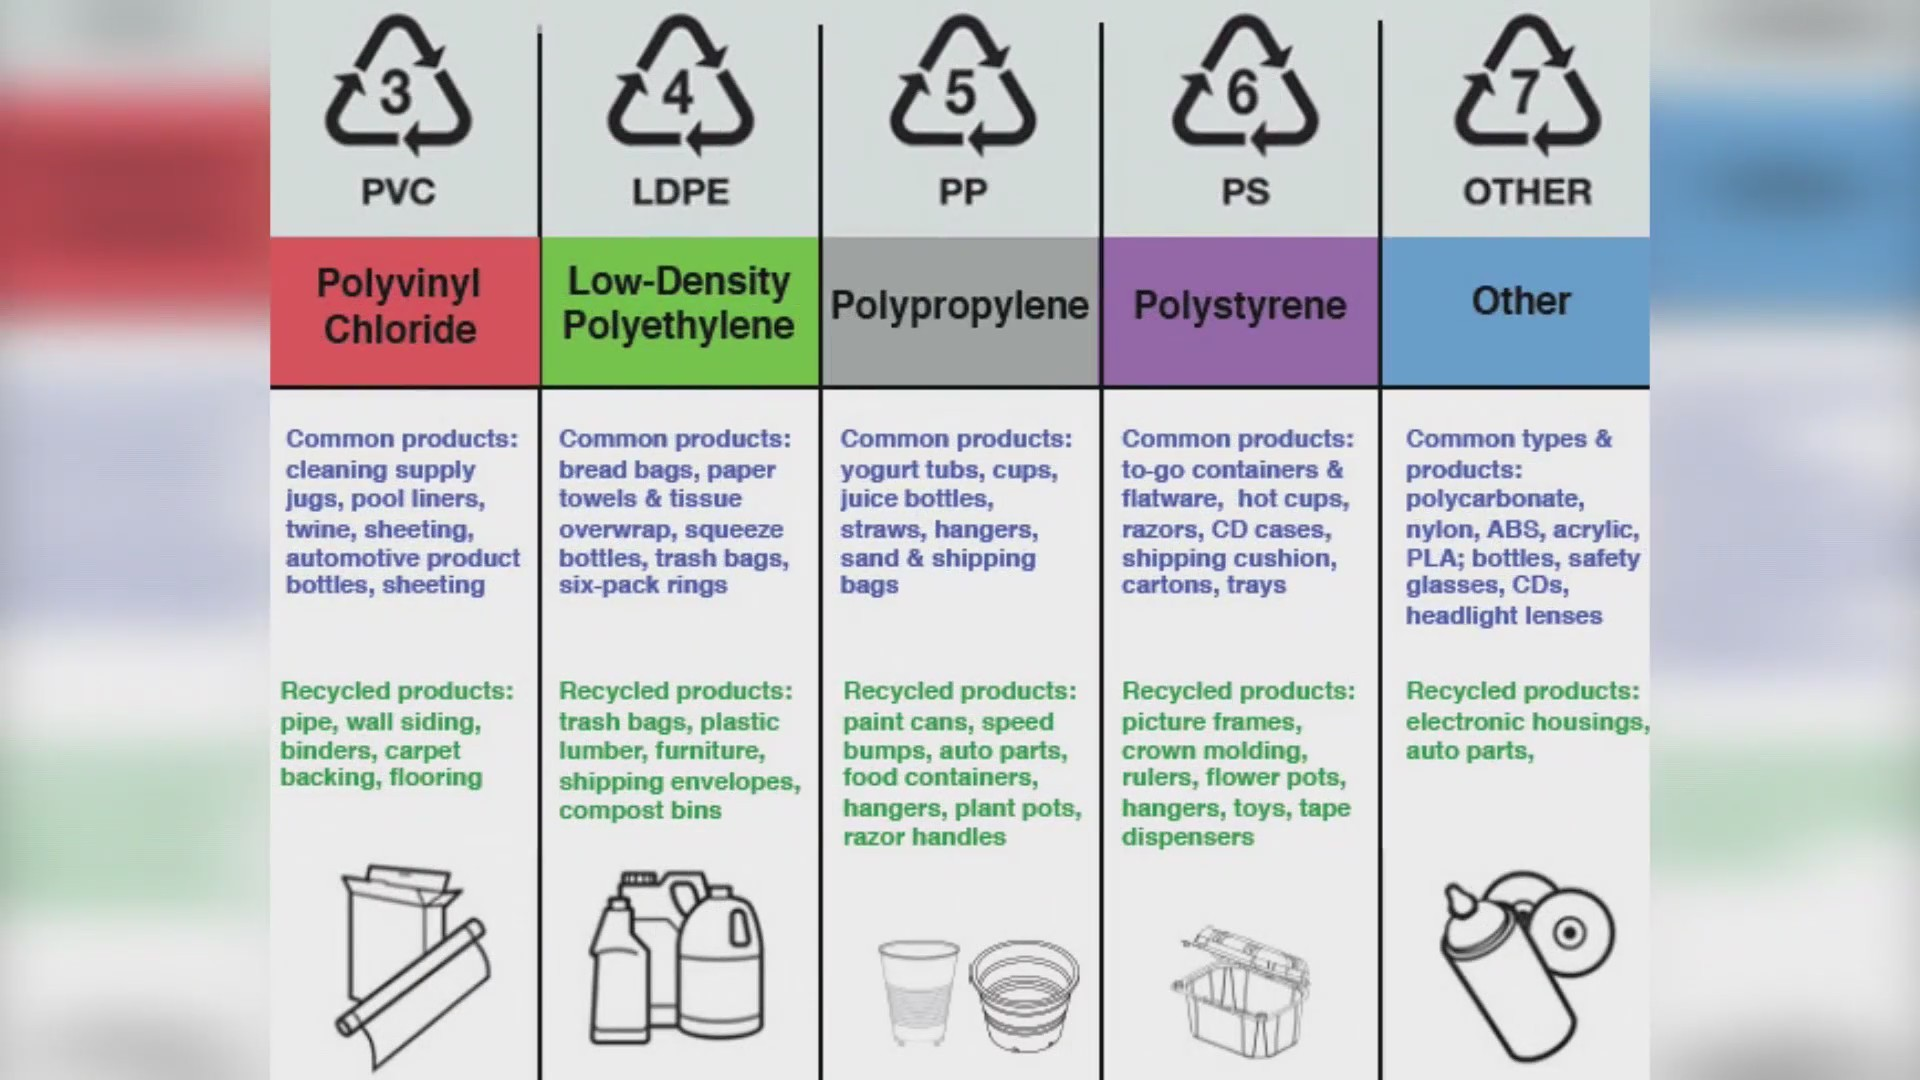 Recycling_9_20190103033512